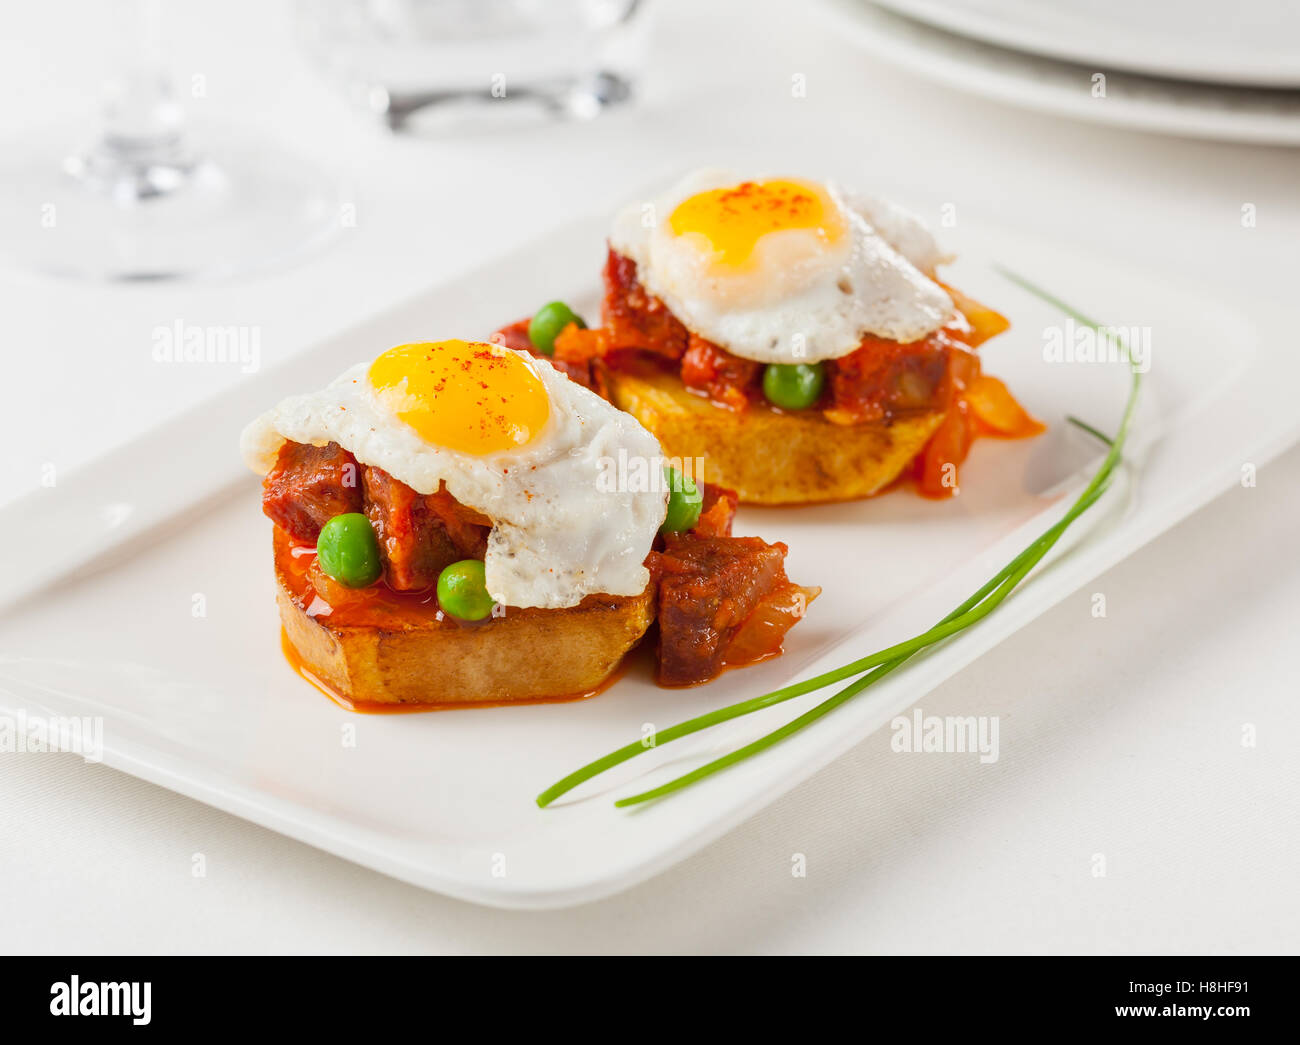 Chorizo and fried egg on a potato slice. Small tapa plate for sharing. - Stock Image